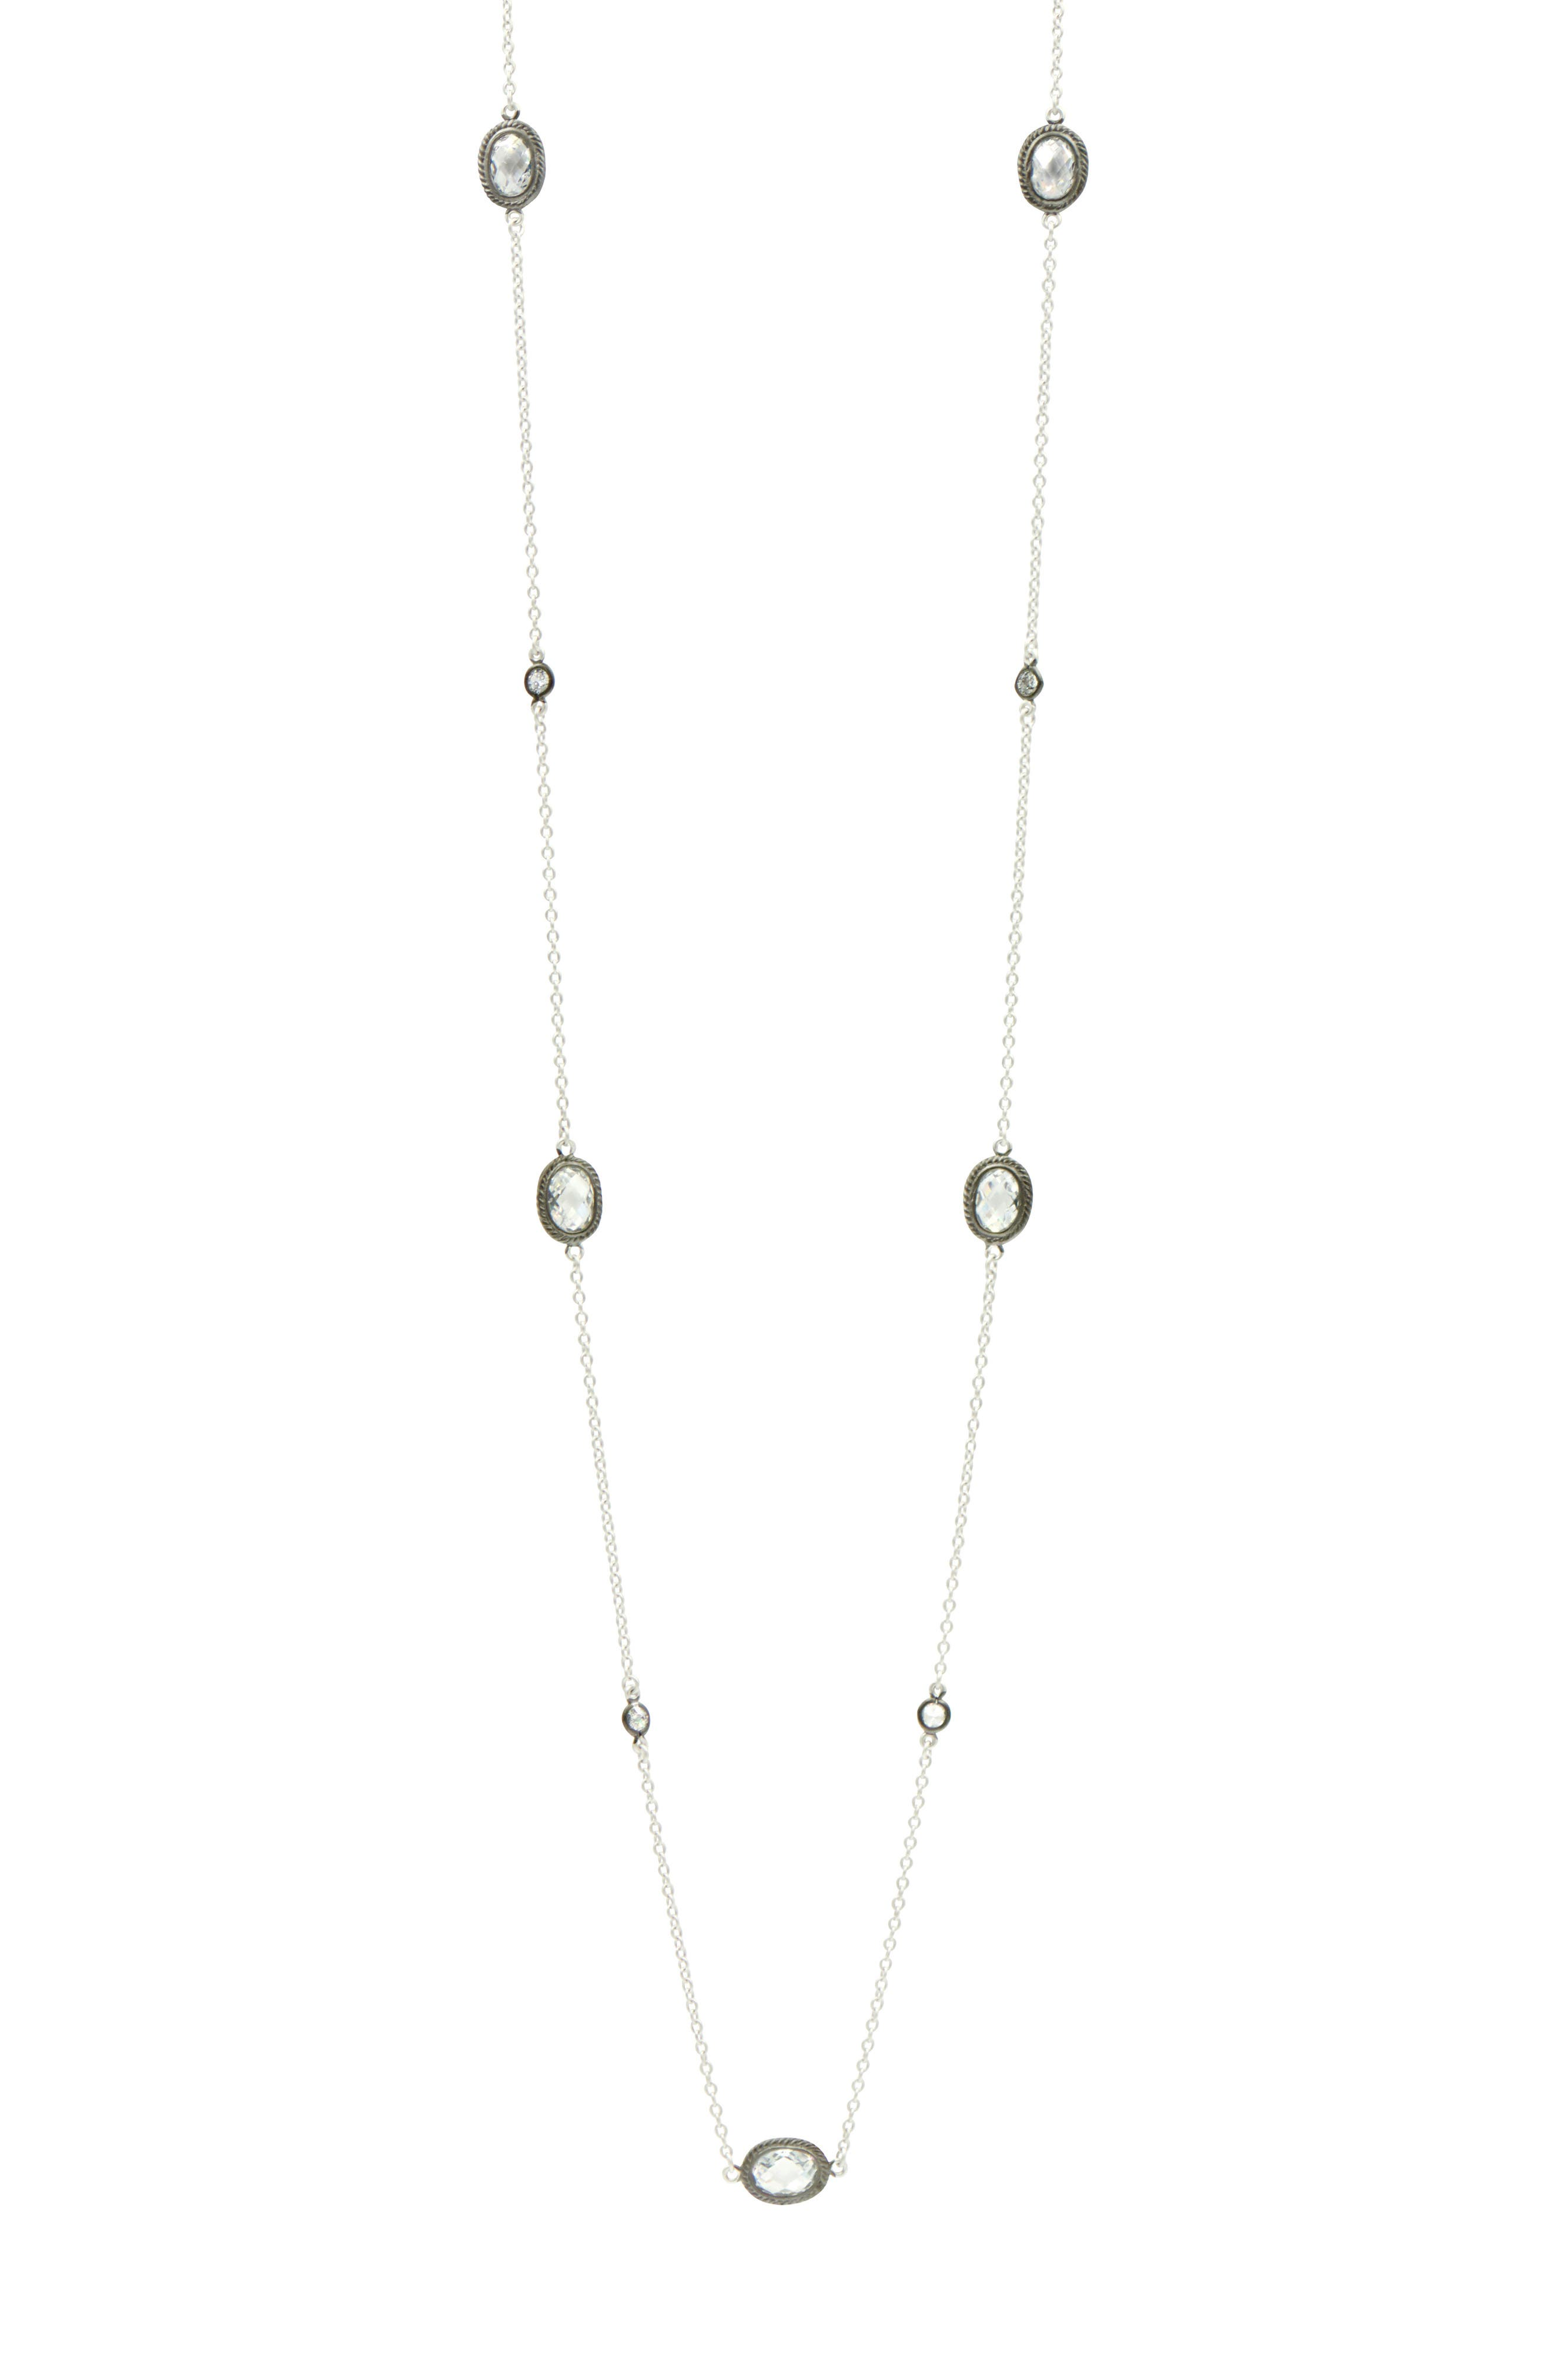 Signature Raindrop Station Necklace,                         Main,                         color, Black/ Silver